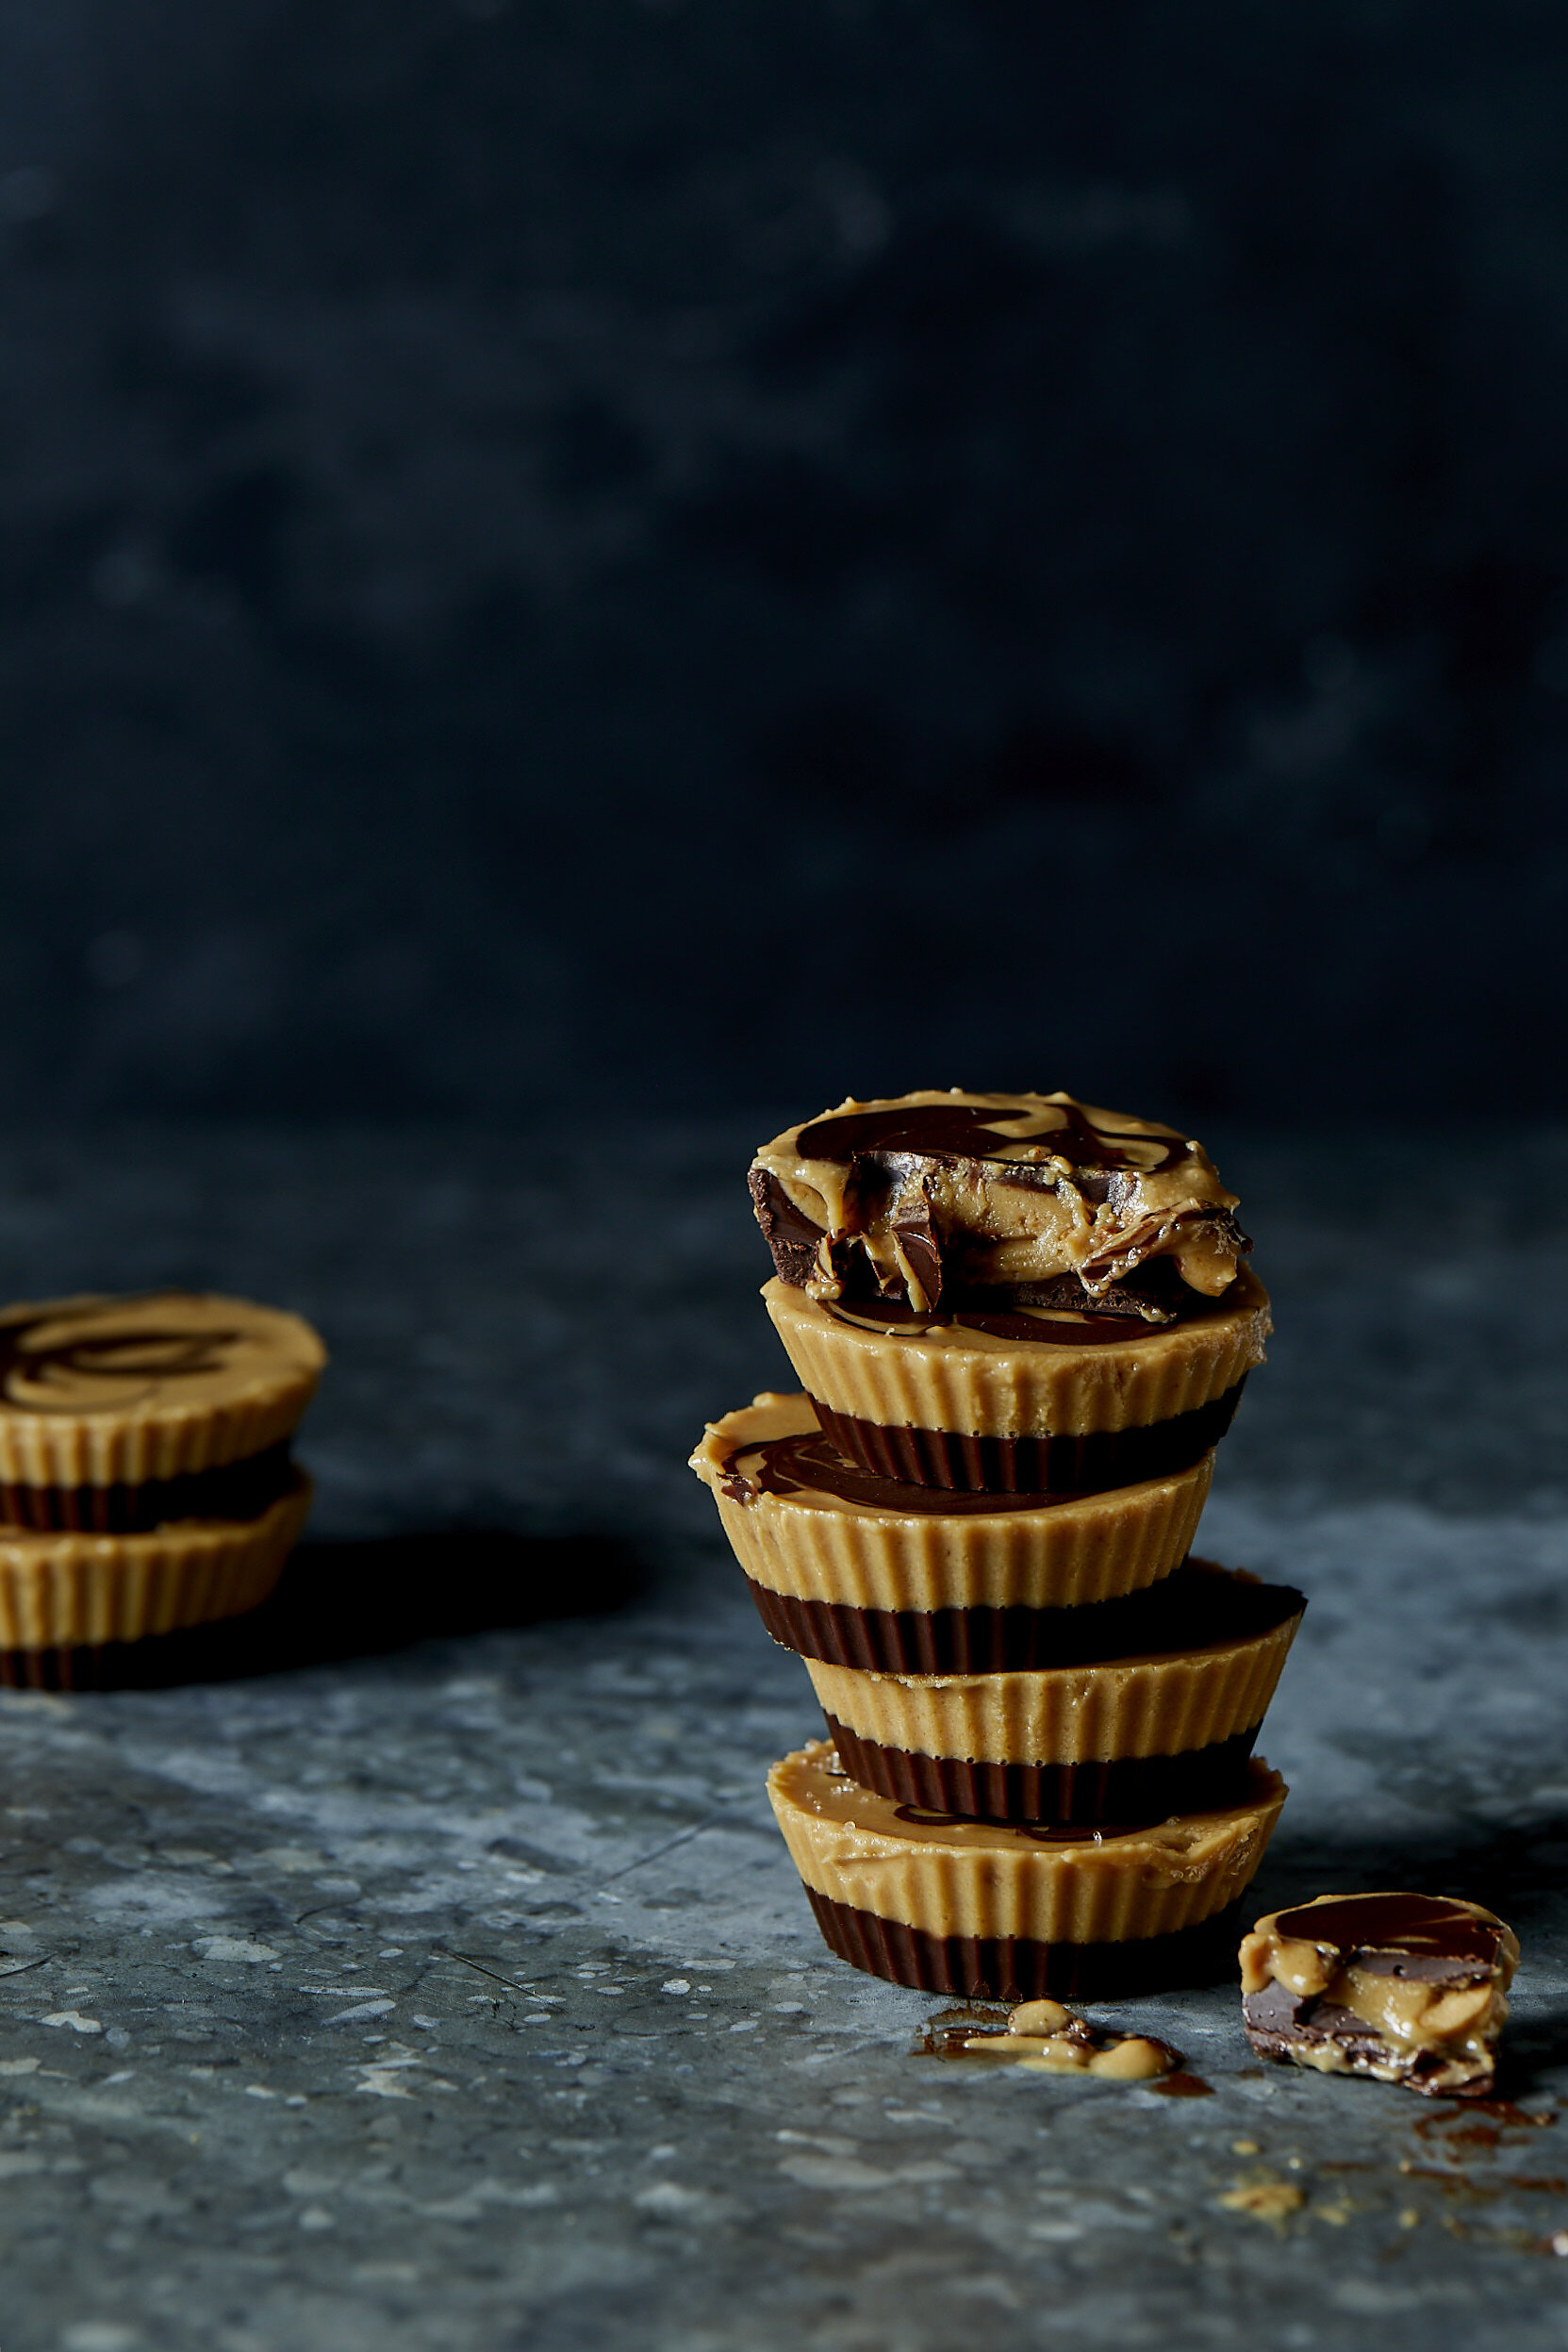 26.03.19_More_plants_267_PeanutButter_Cup_Main.jpg